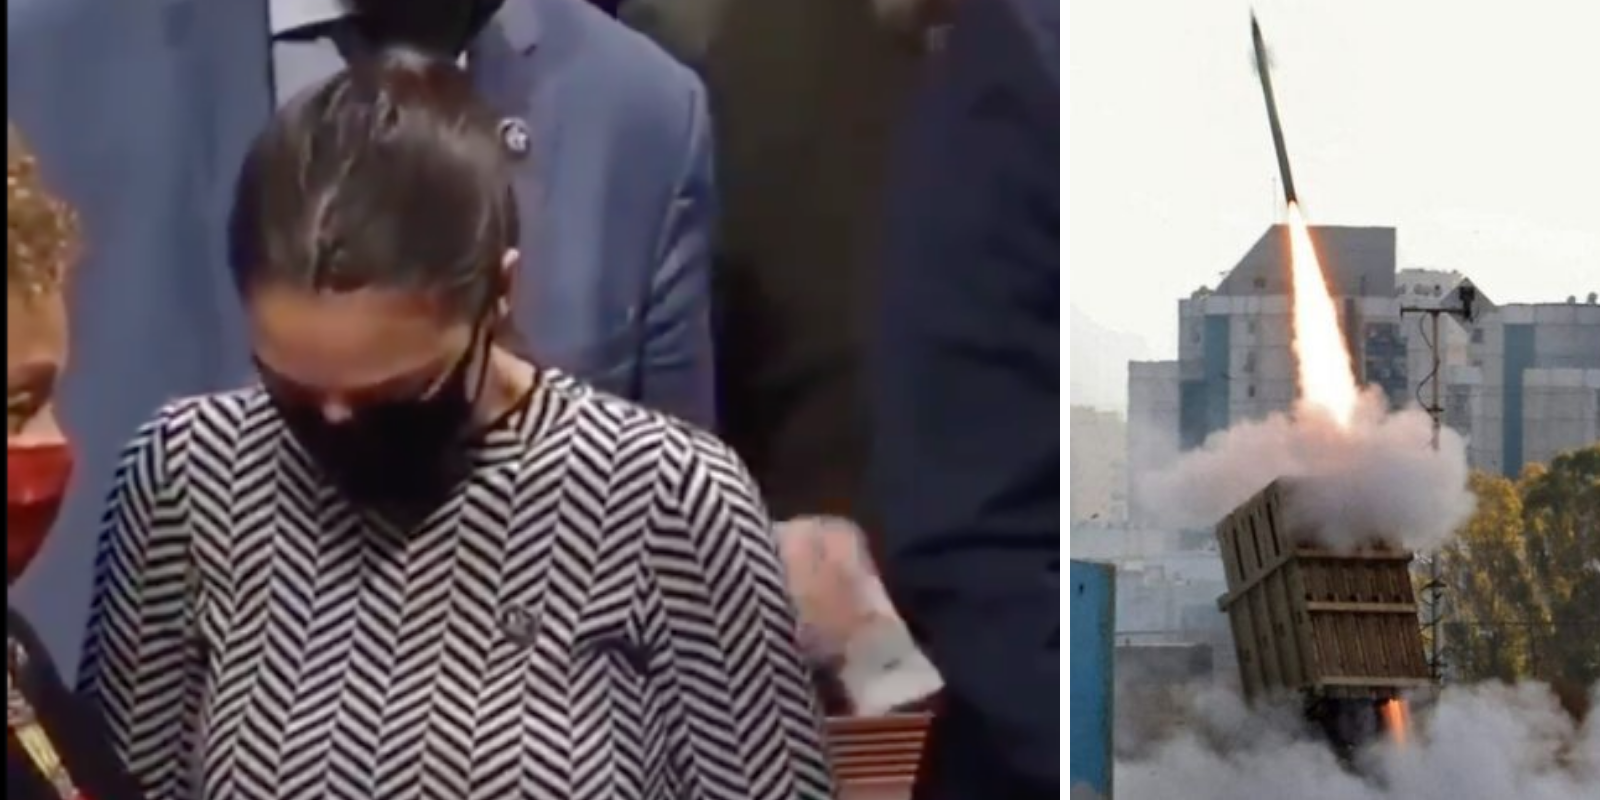 On the left, a picture of Alexandria Ocasio-Cortez wearing a mask and voting in favor of the Iron Dome funding in Congress. On the right, a picture of Iron Dome missiles.